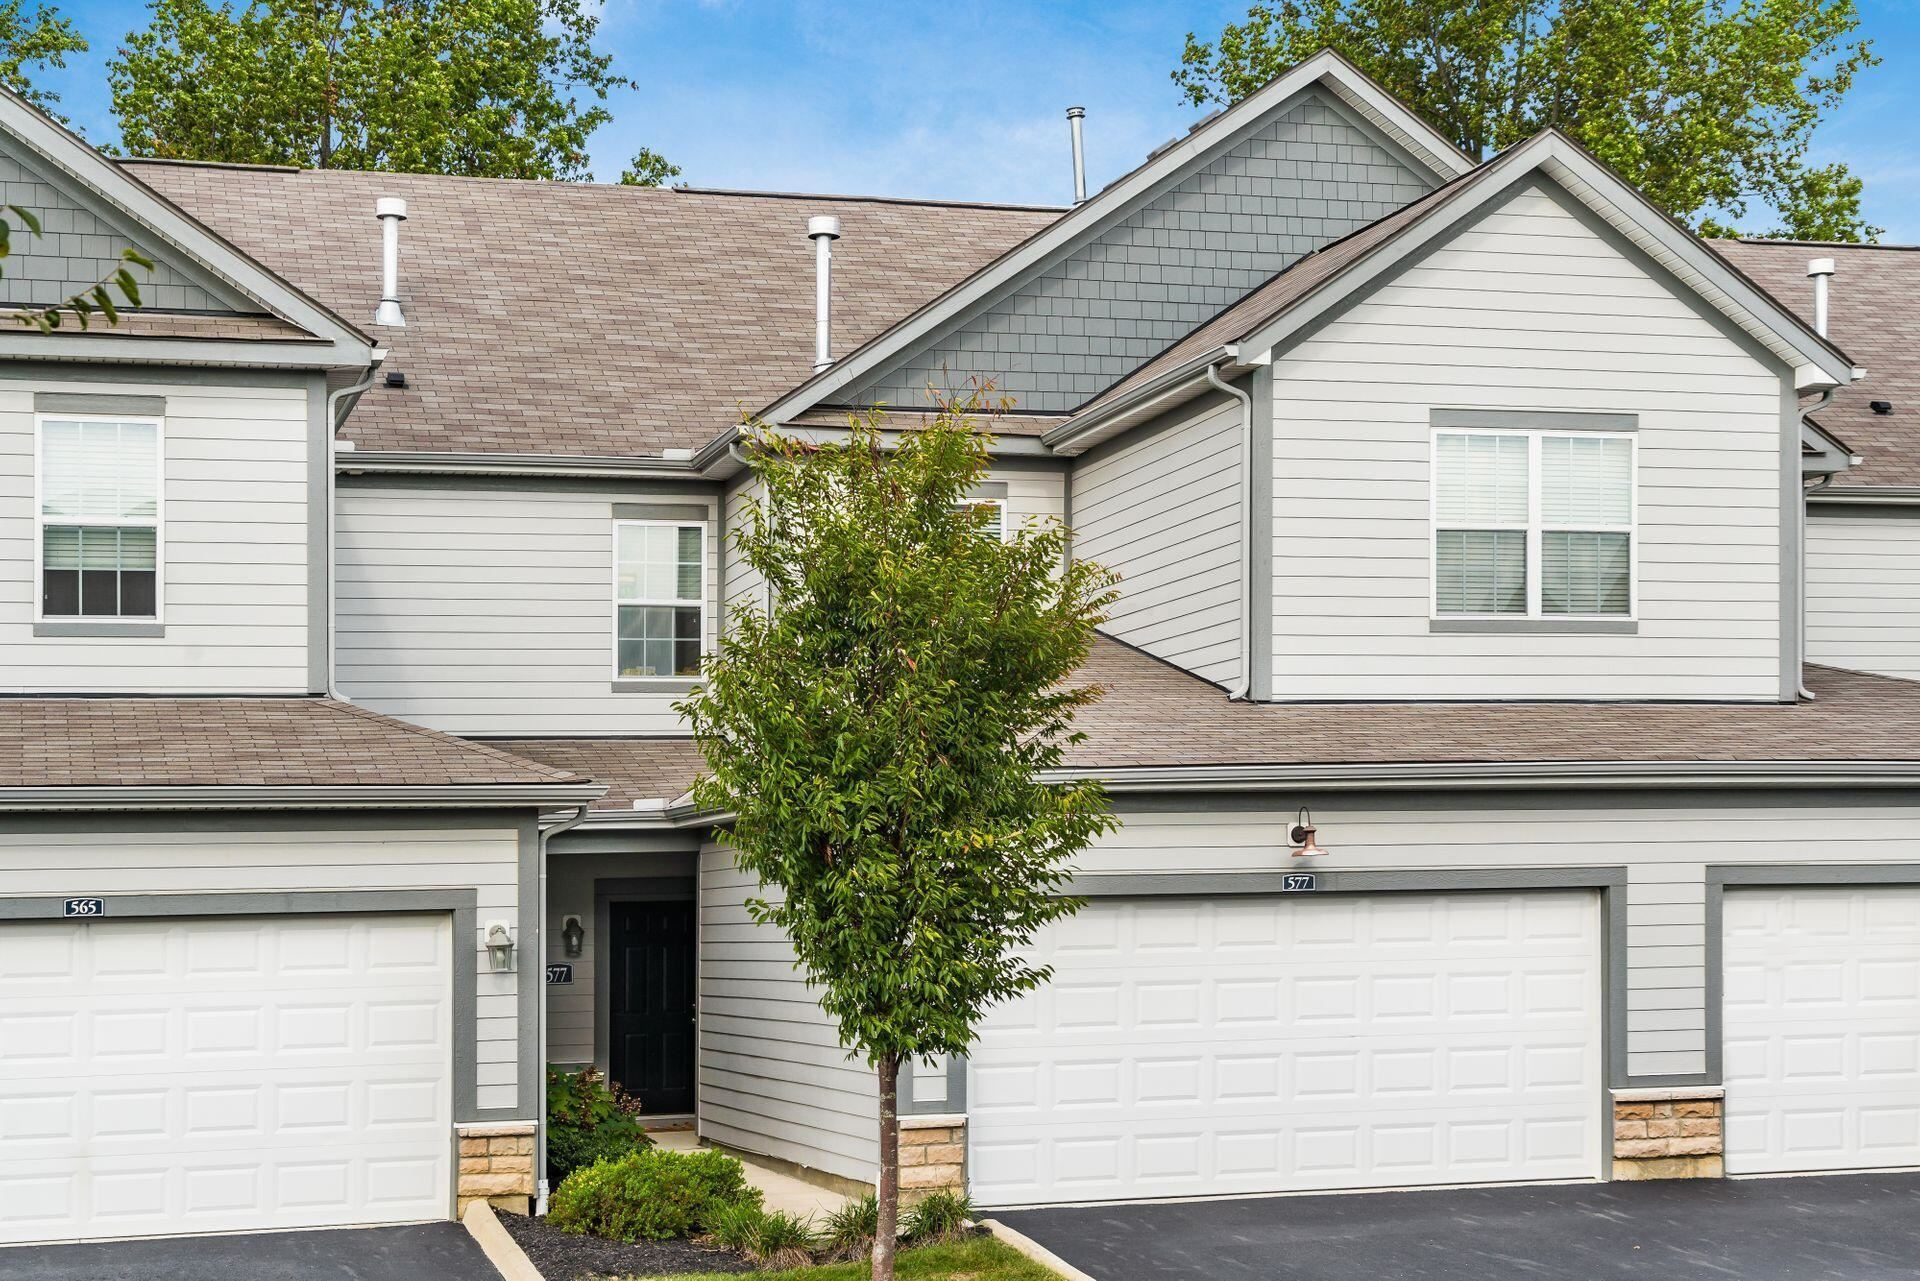 Photo of 577 Wintergreen Way, Lewis Center, OH 43035 (MLS # 221040972)